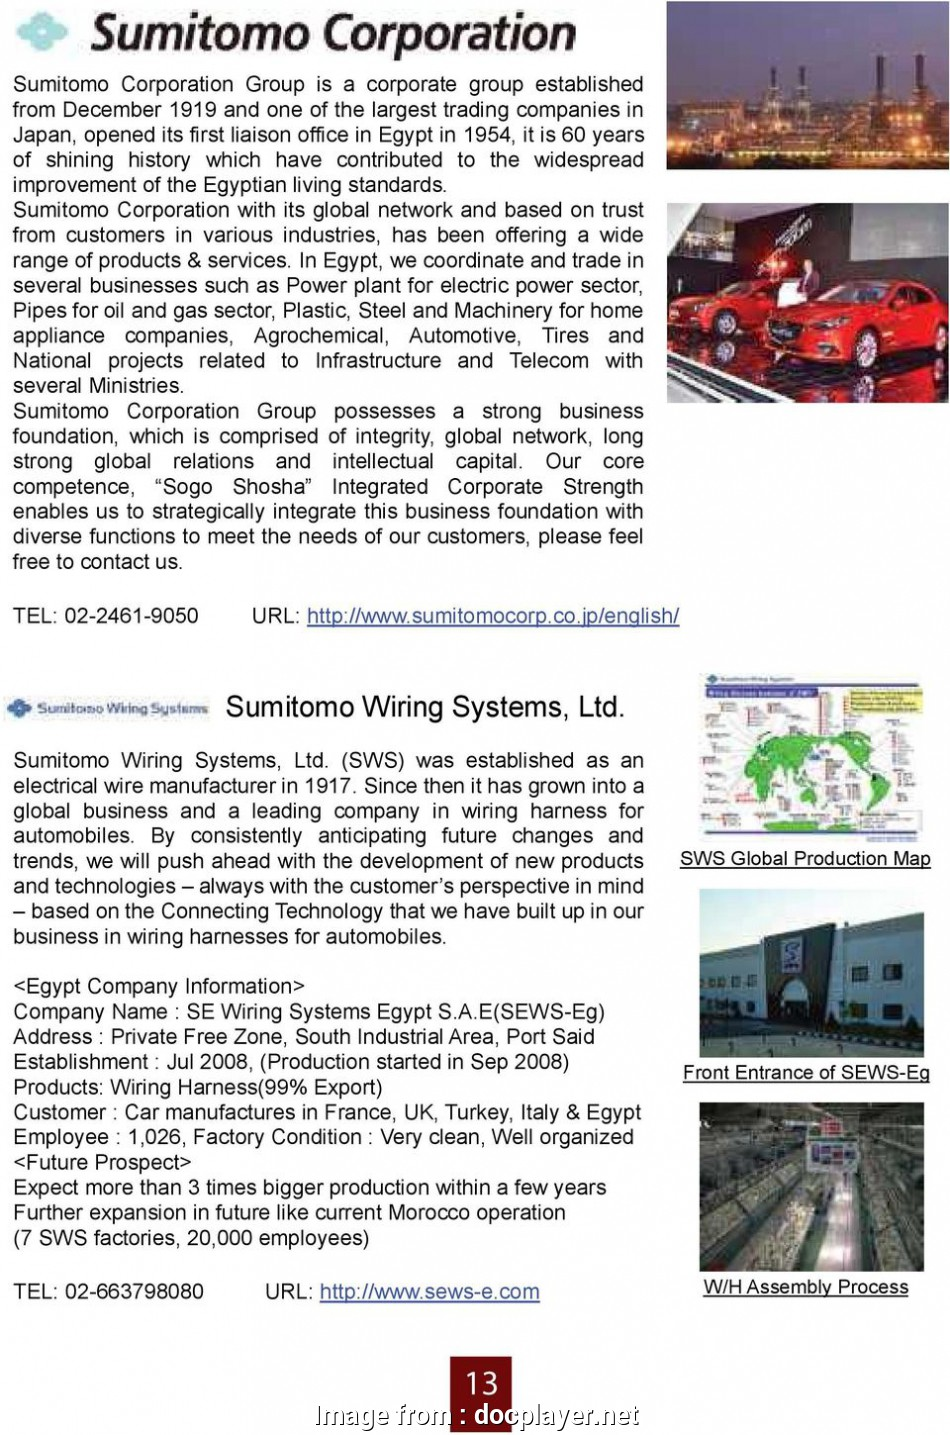 sumitomo electric wiring system co. ltd Sumitomo Corporation with, global network, based on trust from customers in various industries Sumitomo Electric Wiring System, Ltd Creative Sumitomo Corporation With, Global Network, Based On Trust From Customers In Various Industries Photos